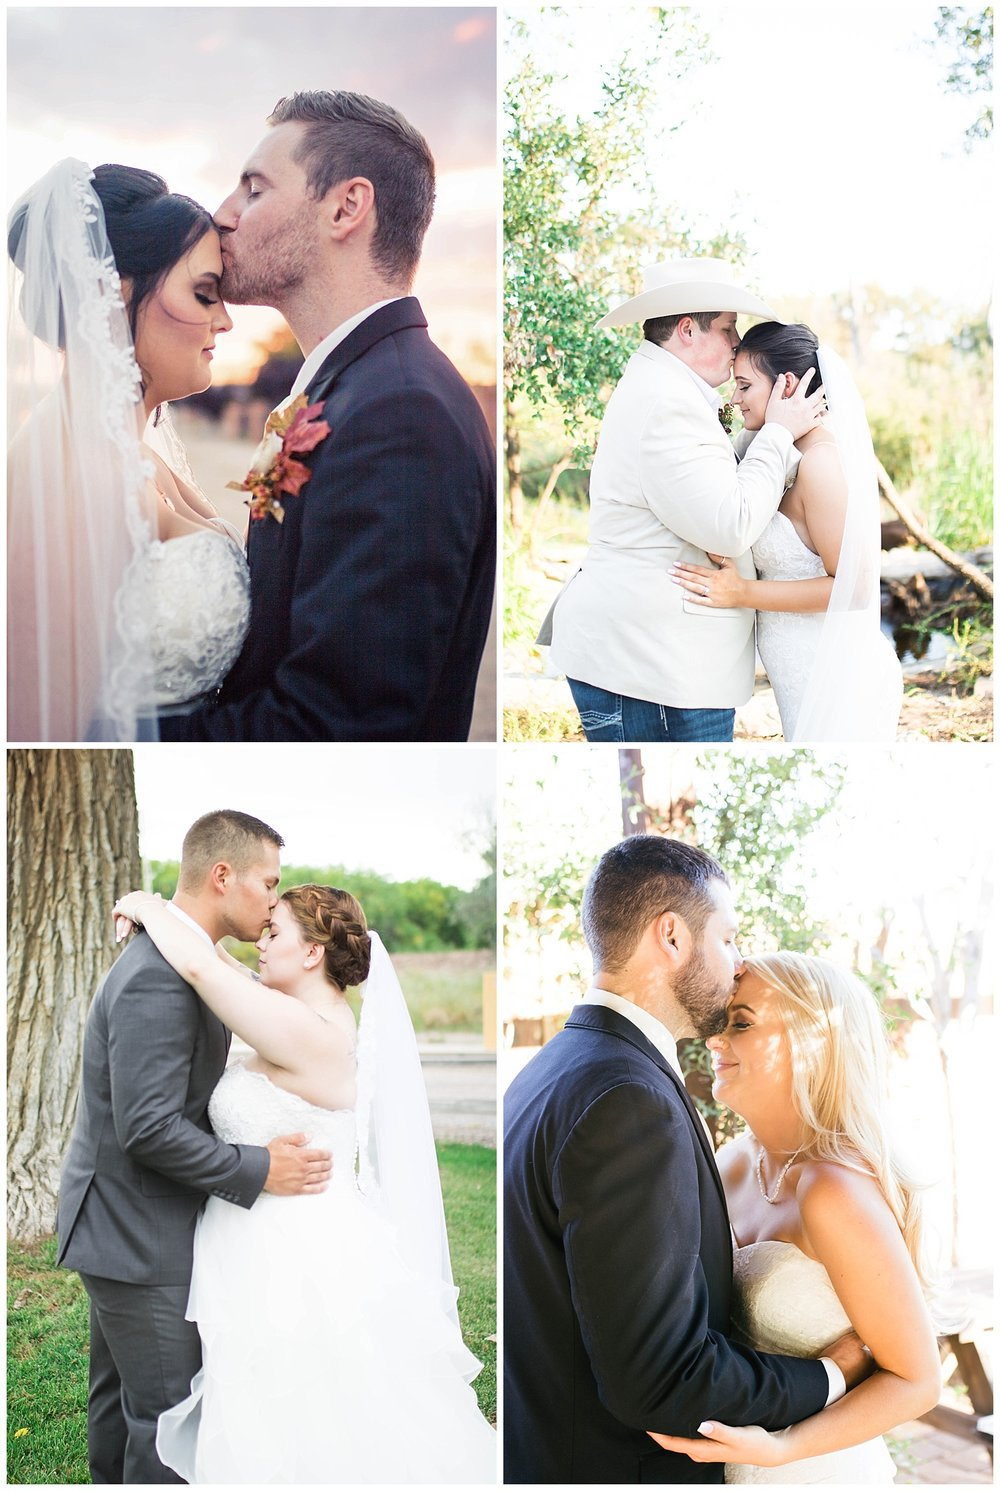 Beautiful bridal portraits with the groom kissing his bride on the forehead.